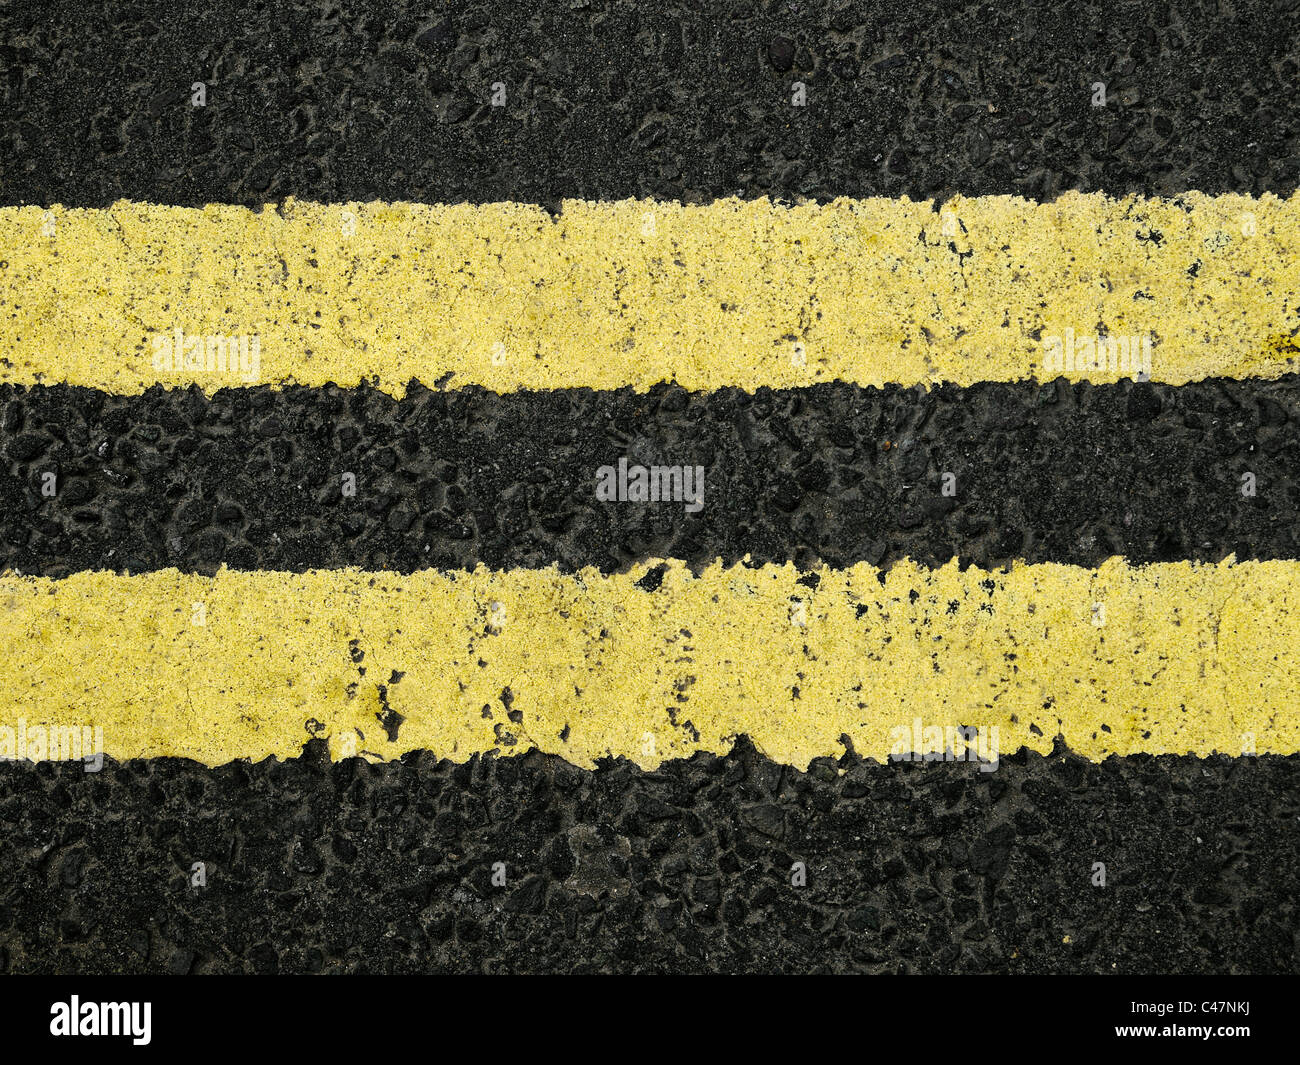 Double Yellow Line on a Road, Close Up. - Stock Image